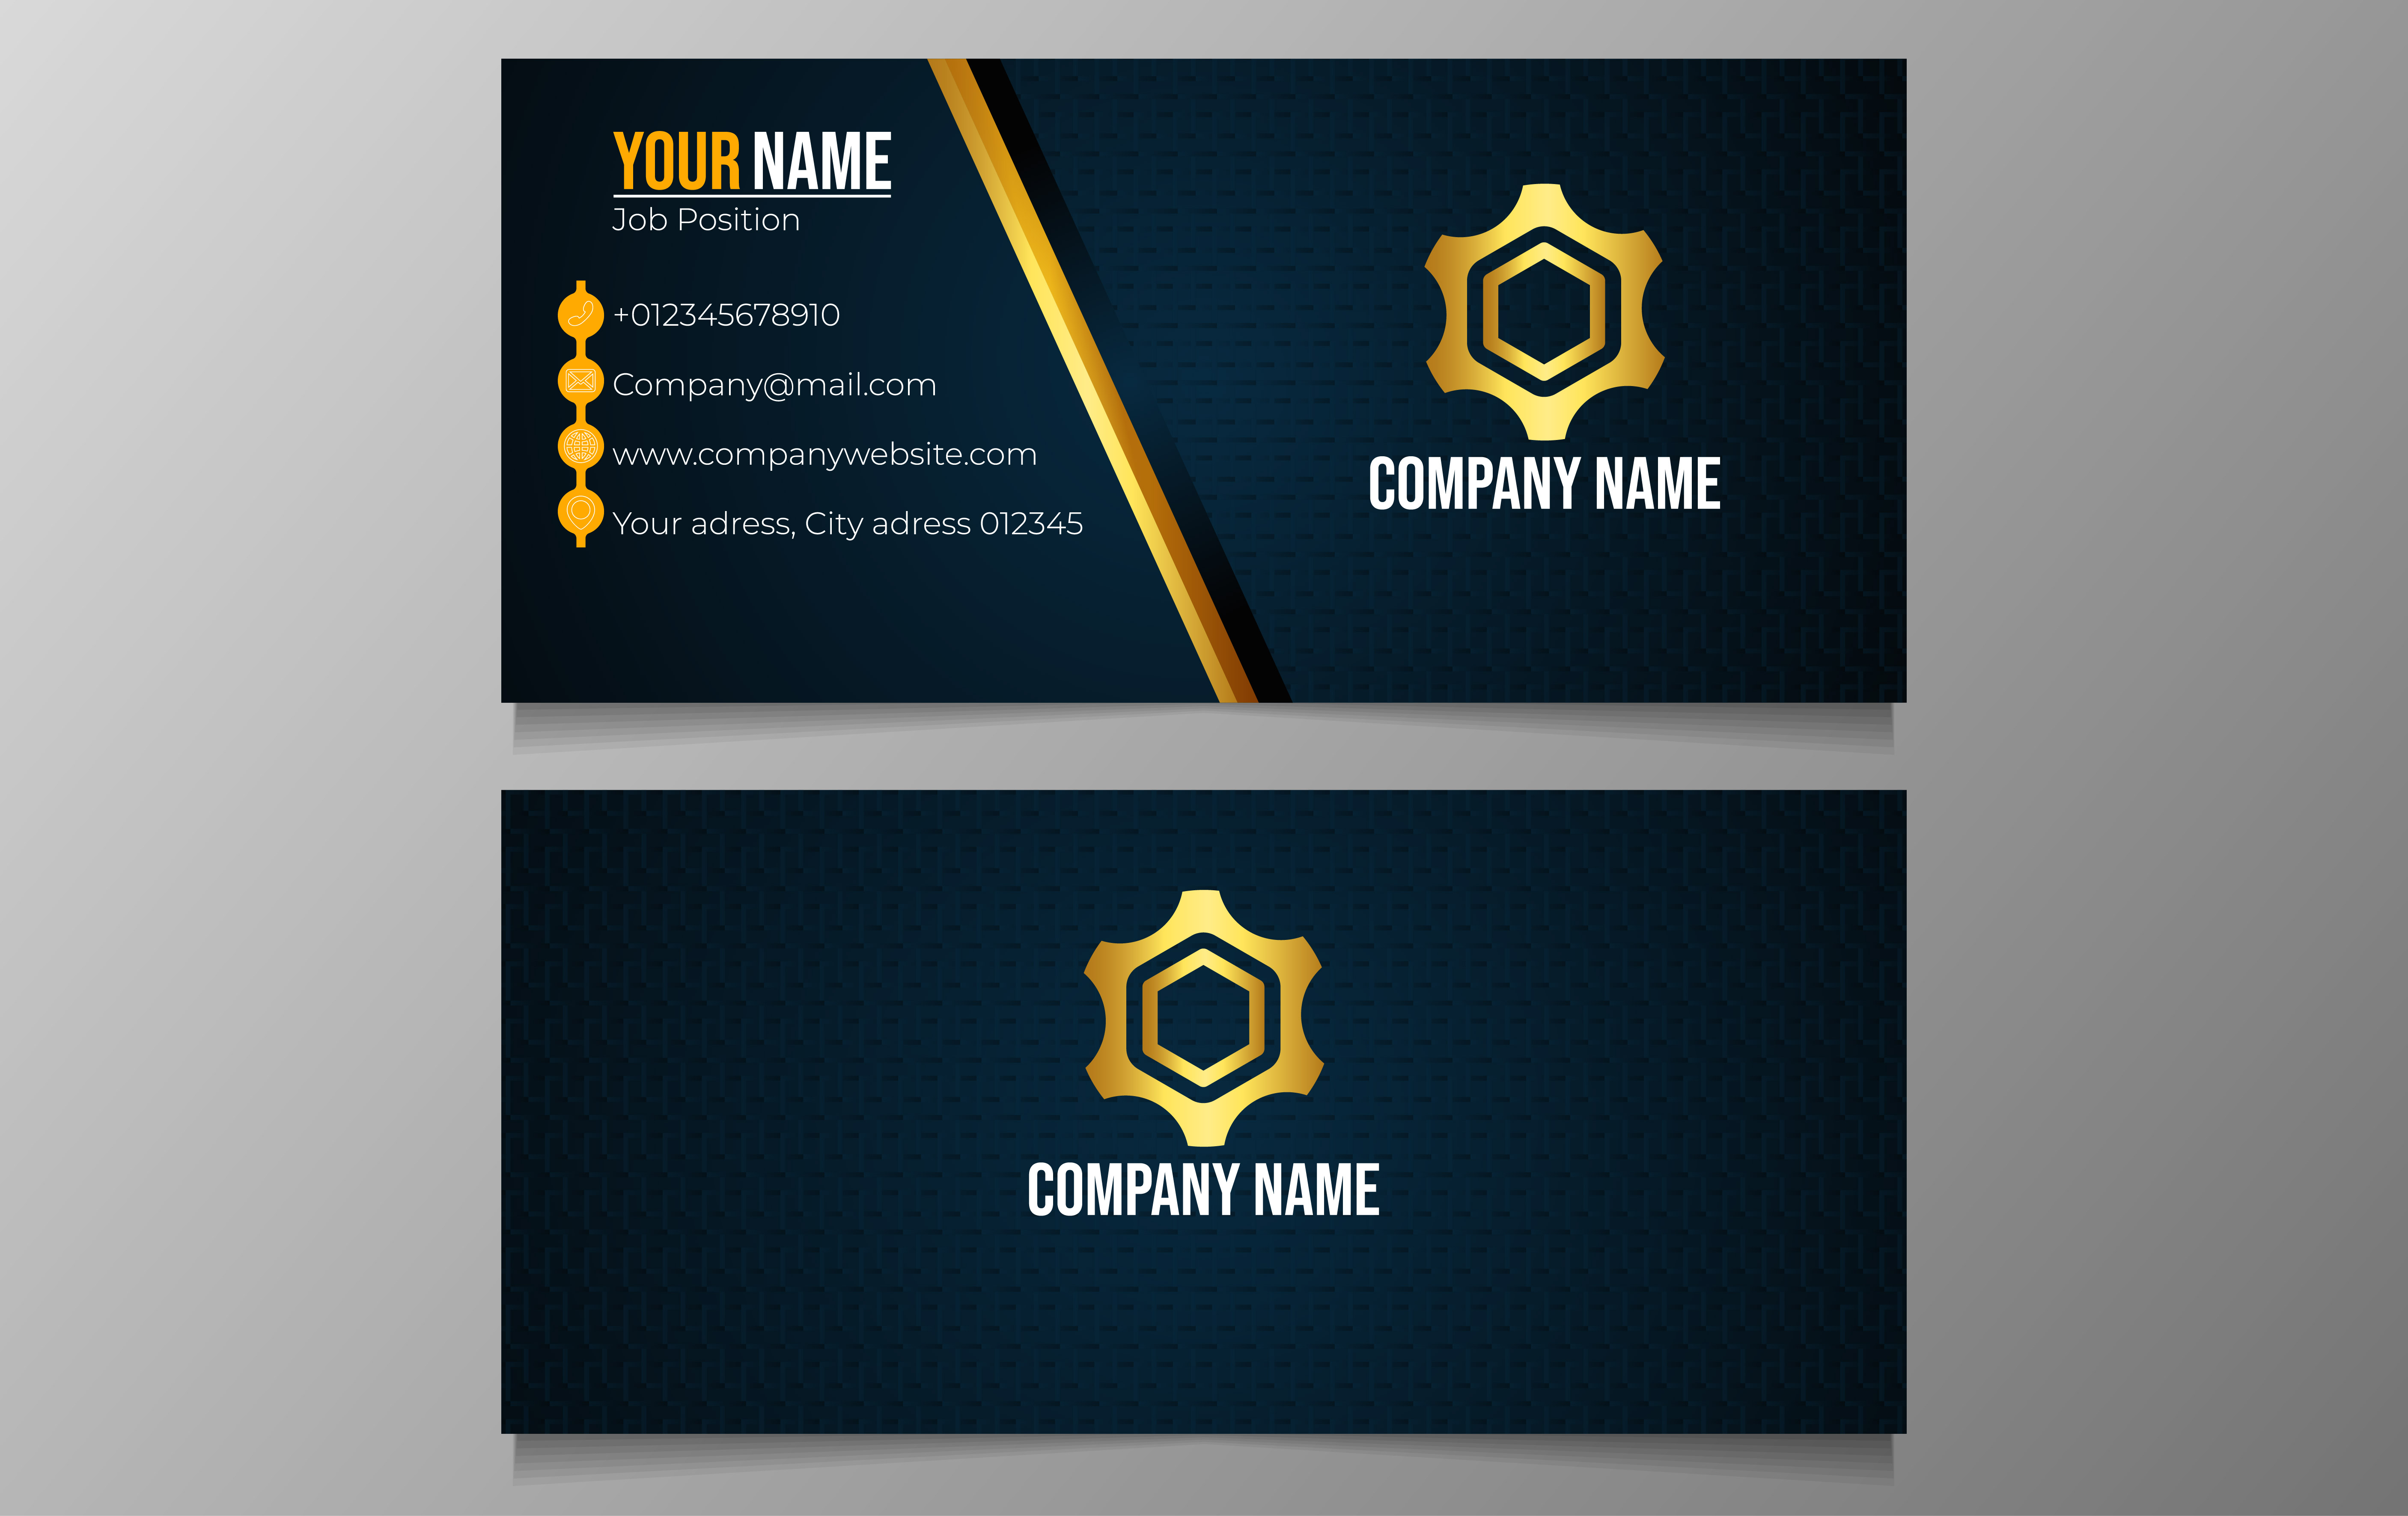 Download Free Clean And Modern Business Card Graphic By Ngabeivector for Cricut Explore, Silhouette and other cutting machines.